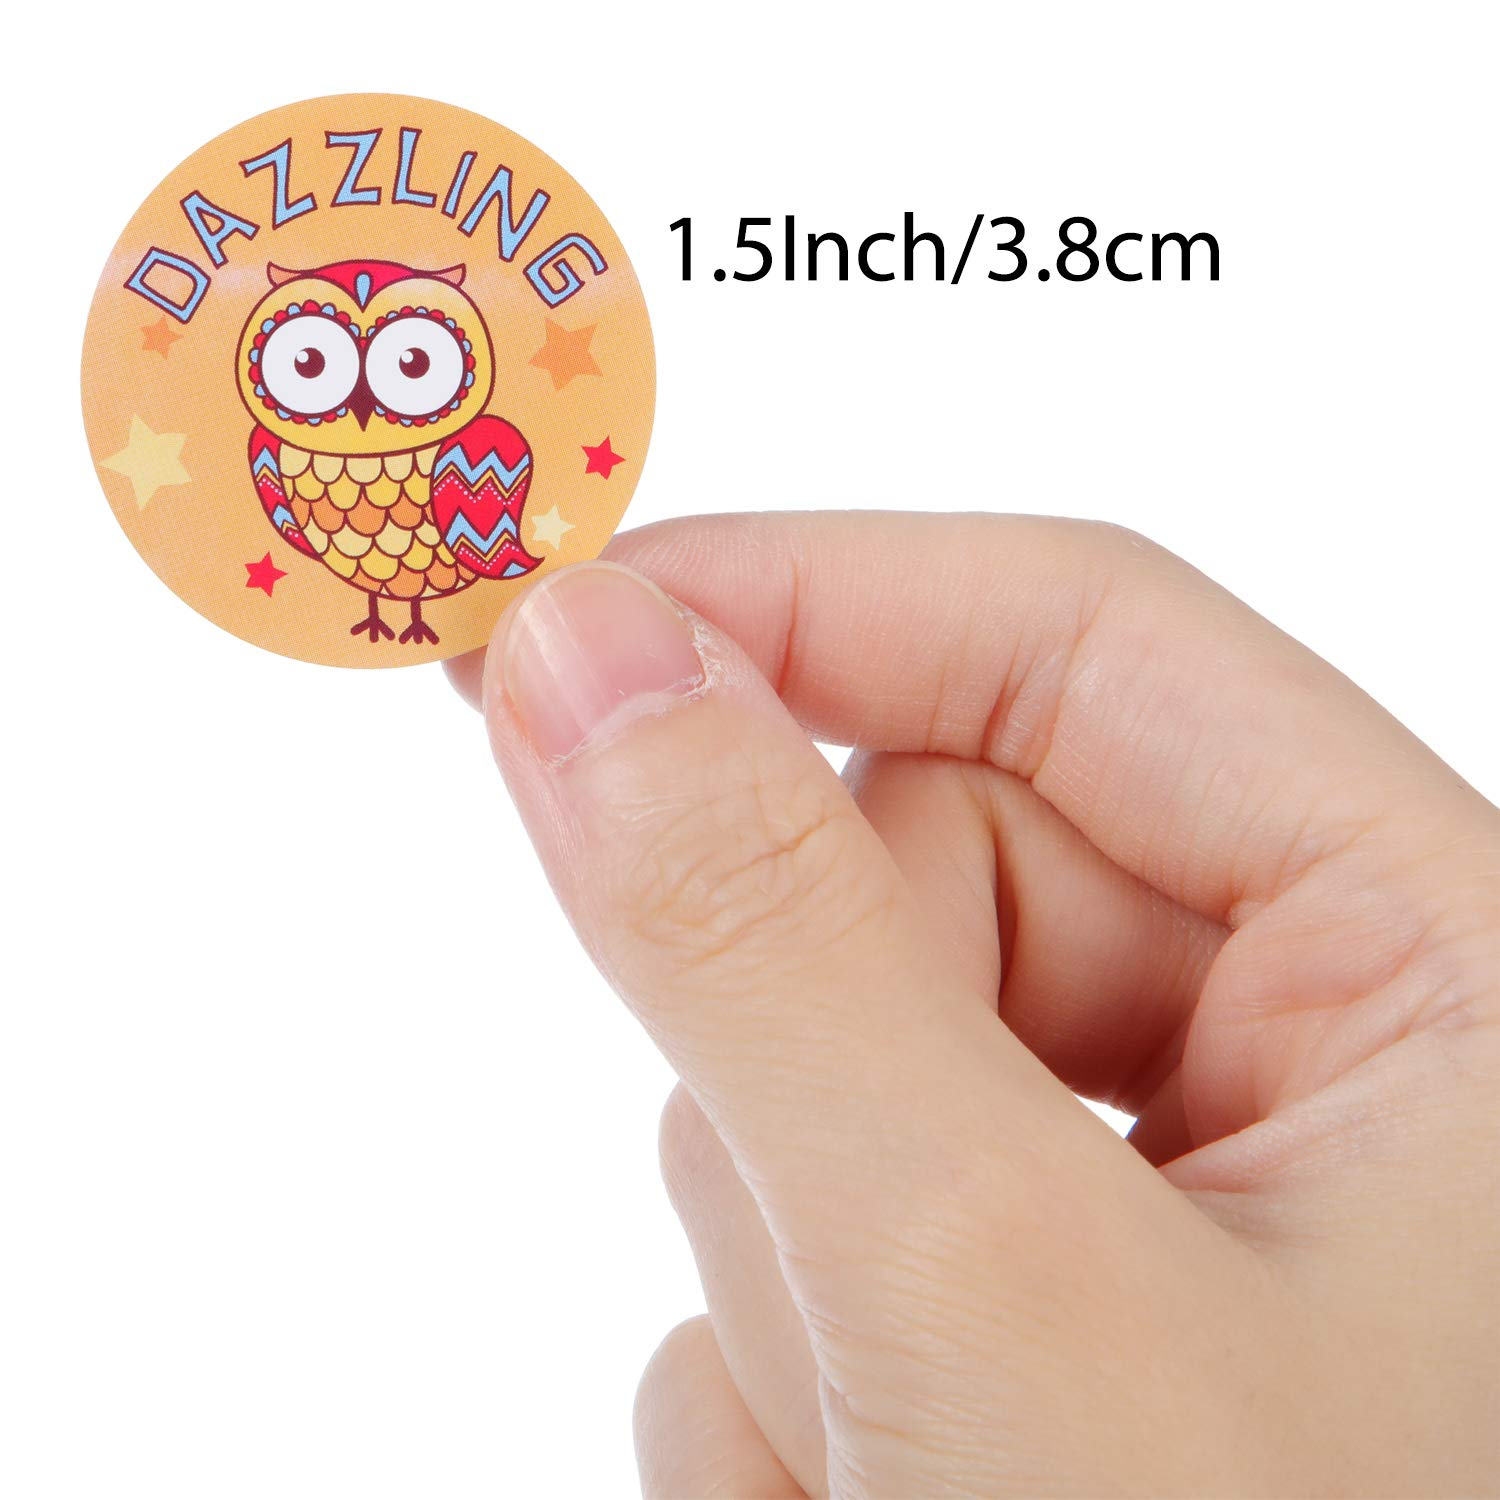 240 Pieces Animal Reward Stickers 1.5 Inches Classroom Motivational Incentive Stickers for Encouragement 16 Designs Teachers Students